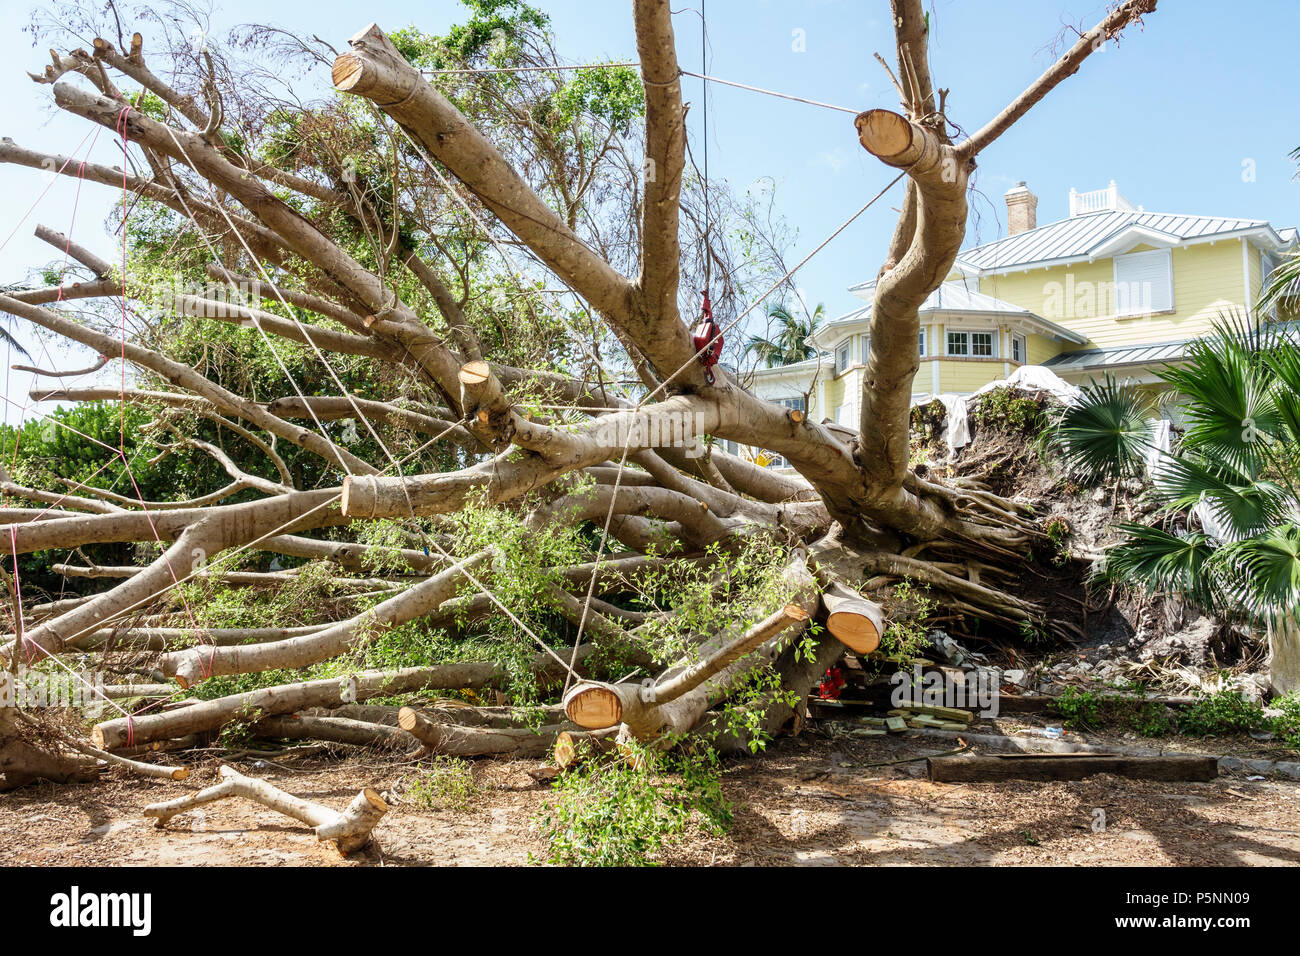 Naples Florida Crayton Road Hurricane Irma wind damage destruction aftermath fallen trees removal storm disaster recovery cleanup front yard - Stock Image